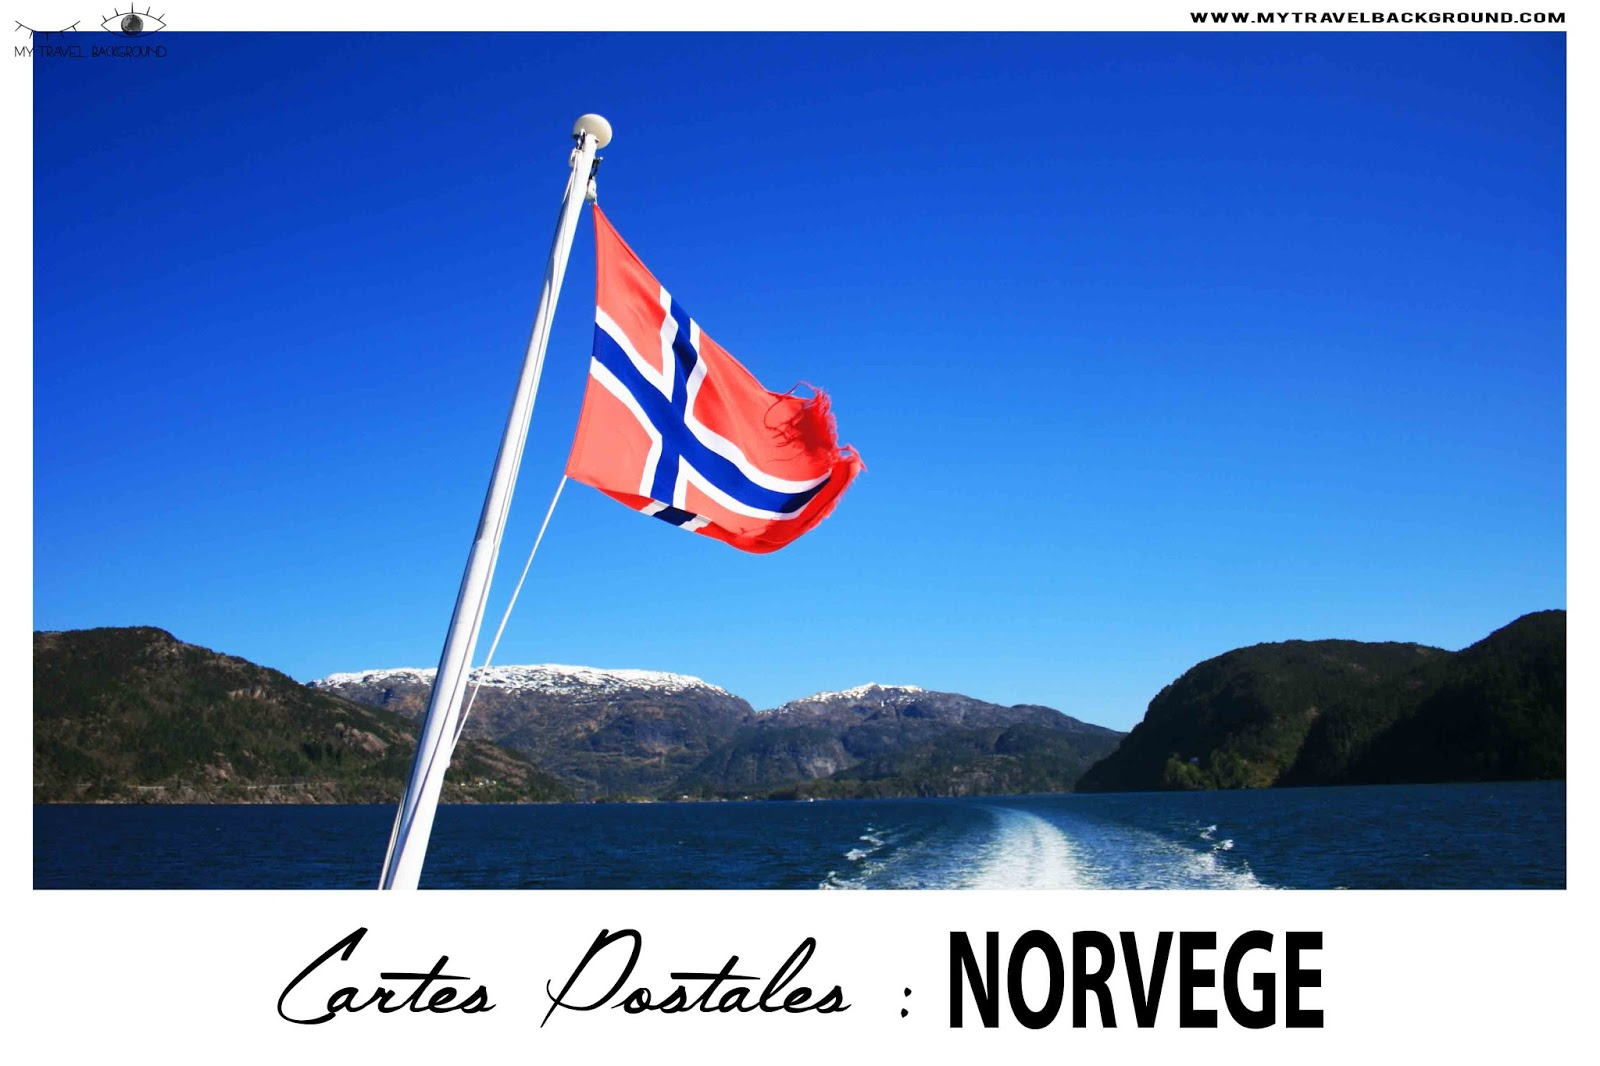 My Travel Background : Cartes Postales de Norvège